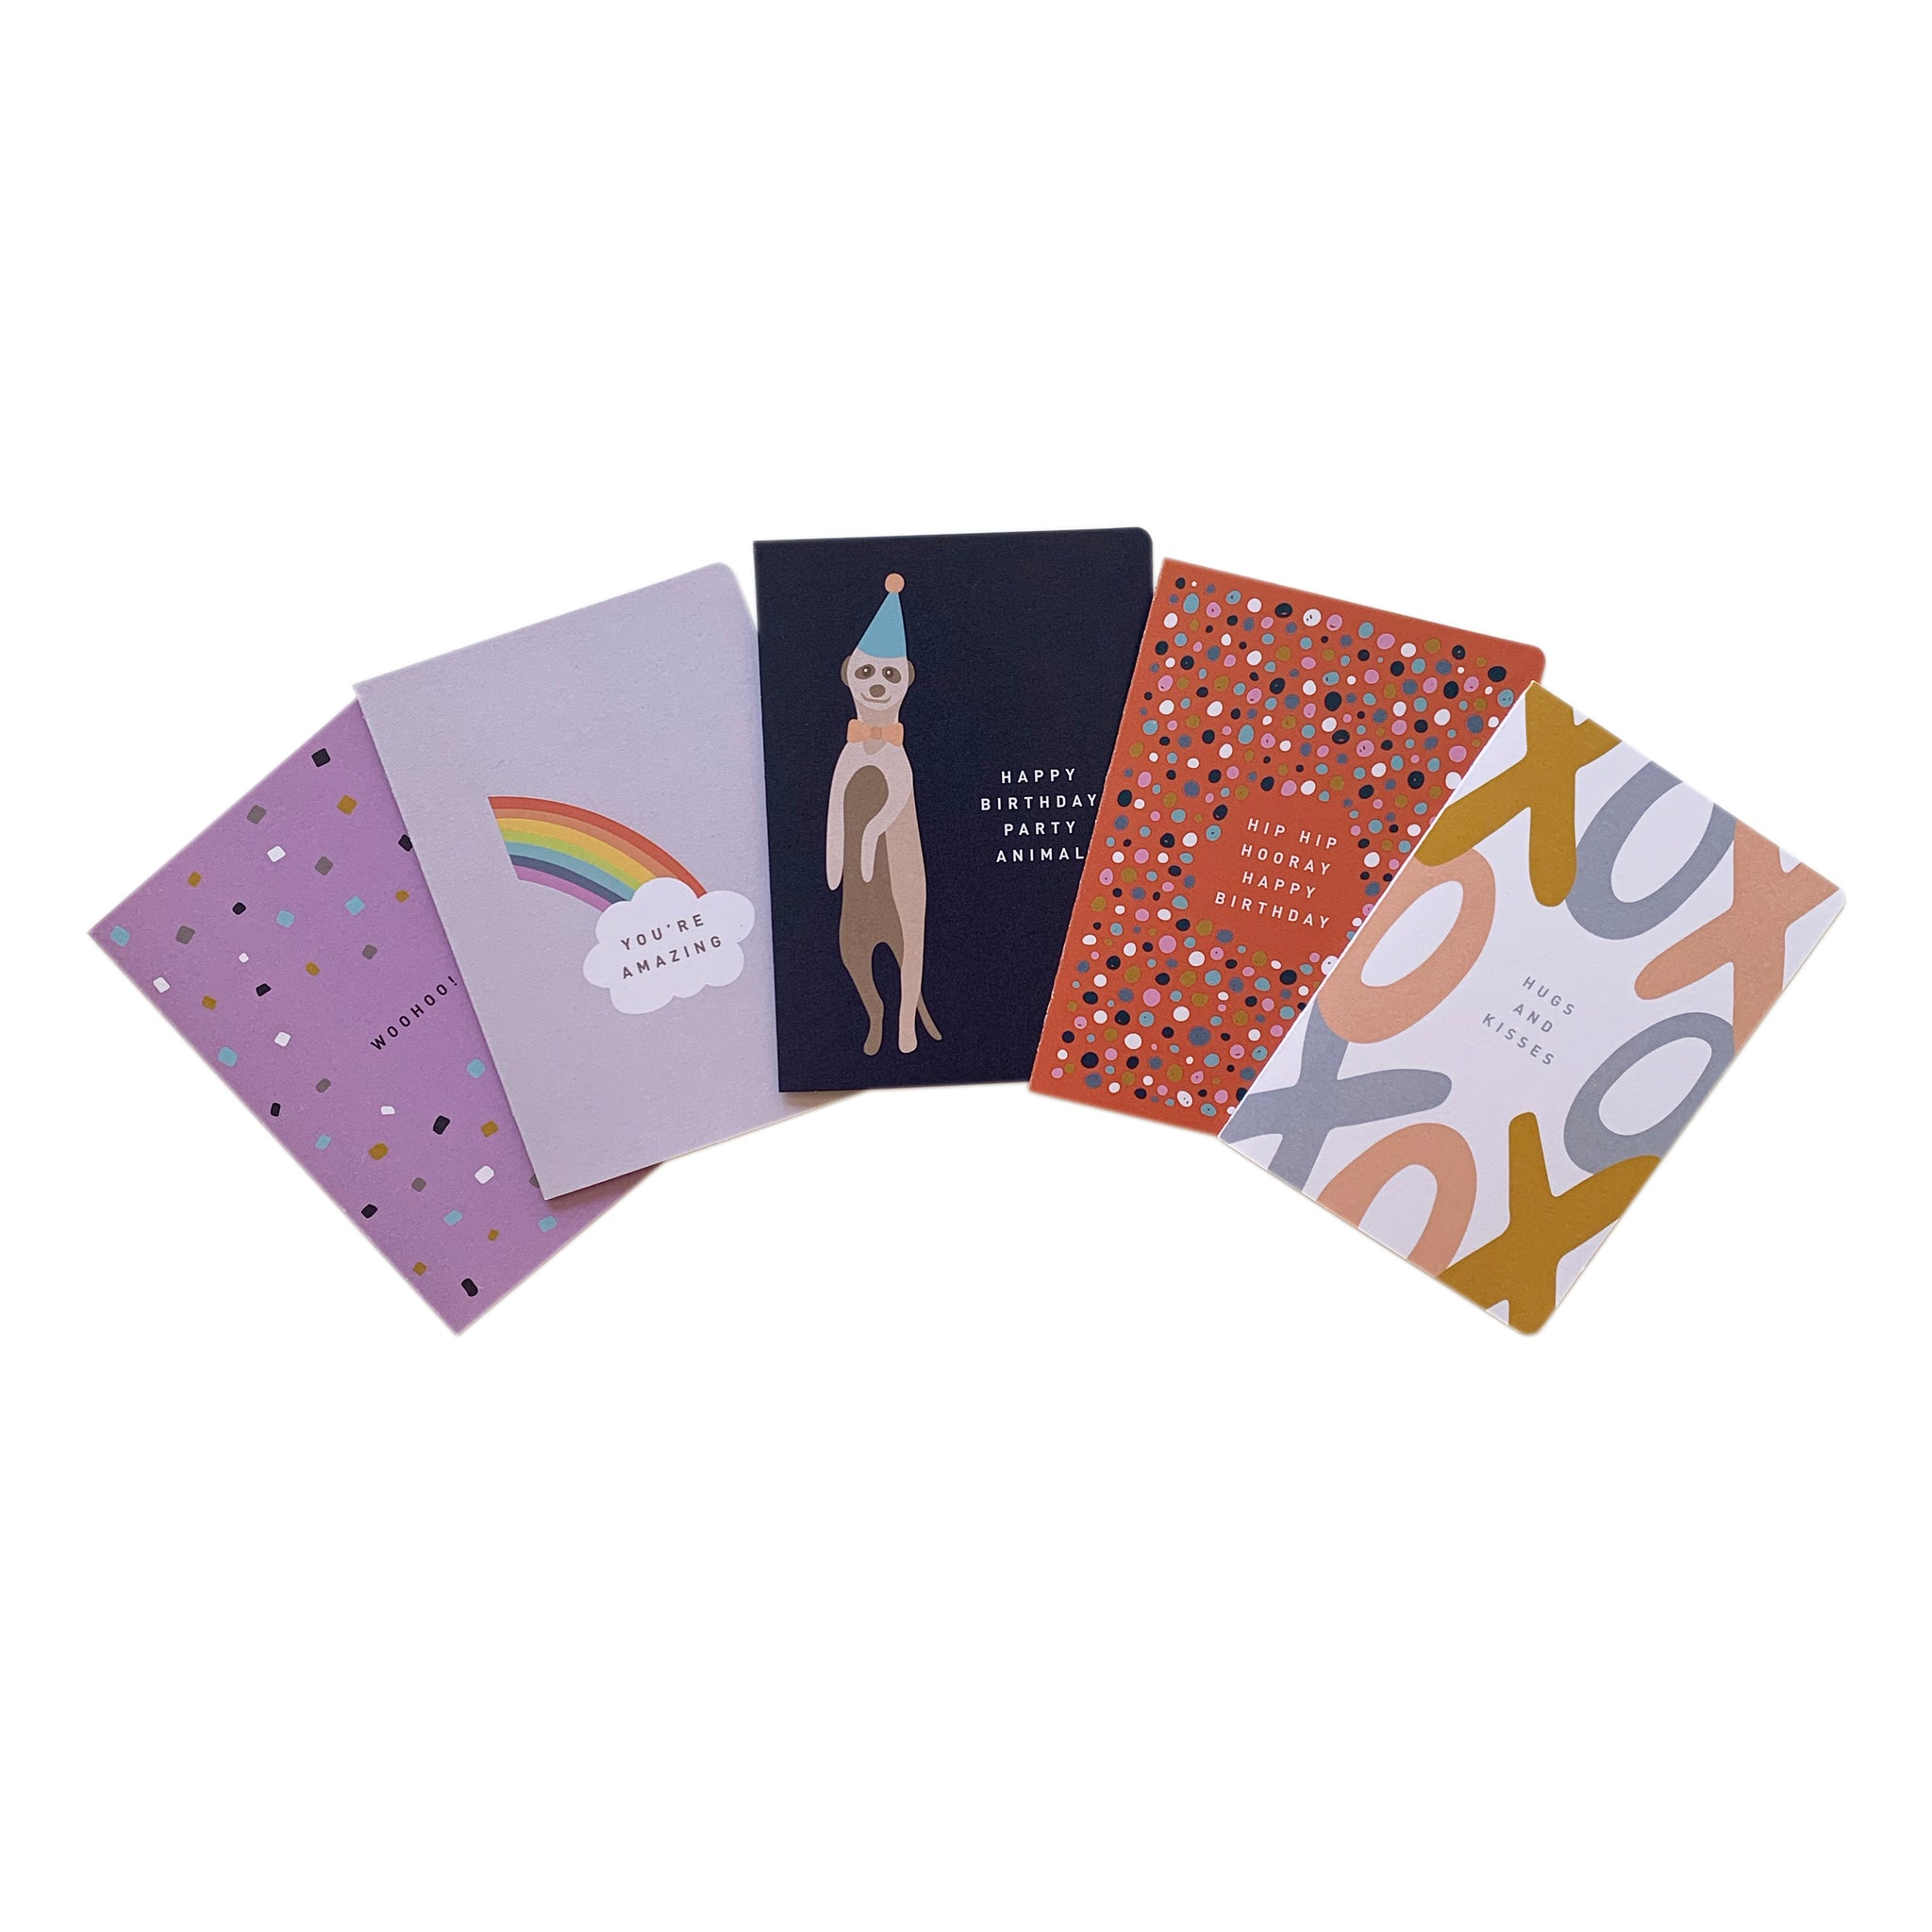 'Fab Five' Greeting Card Mixed Set of 5